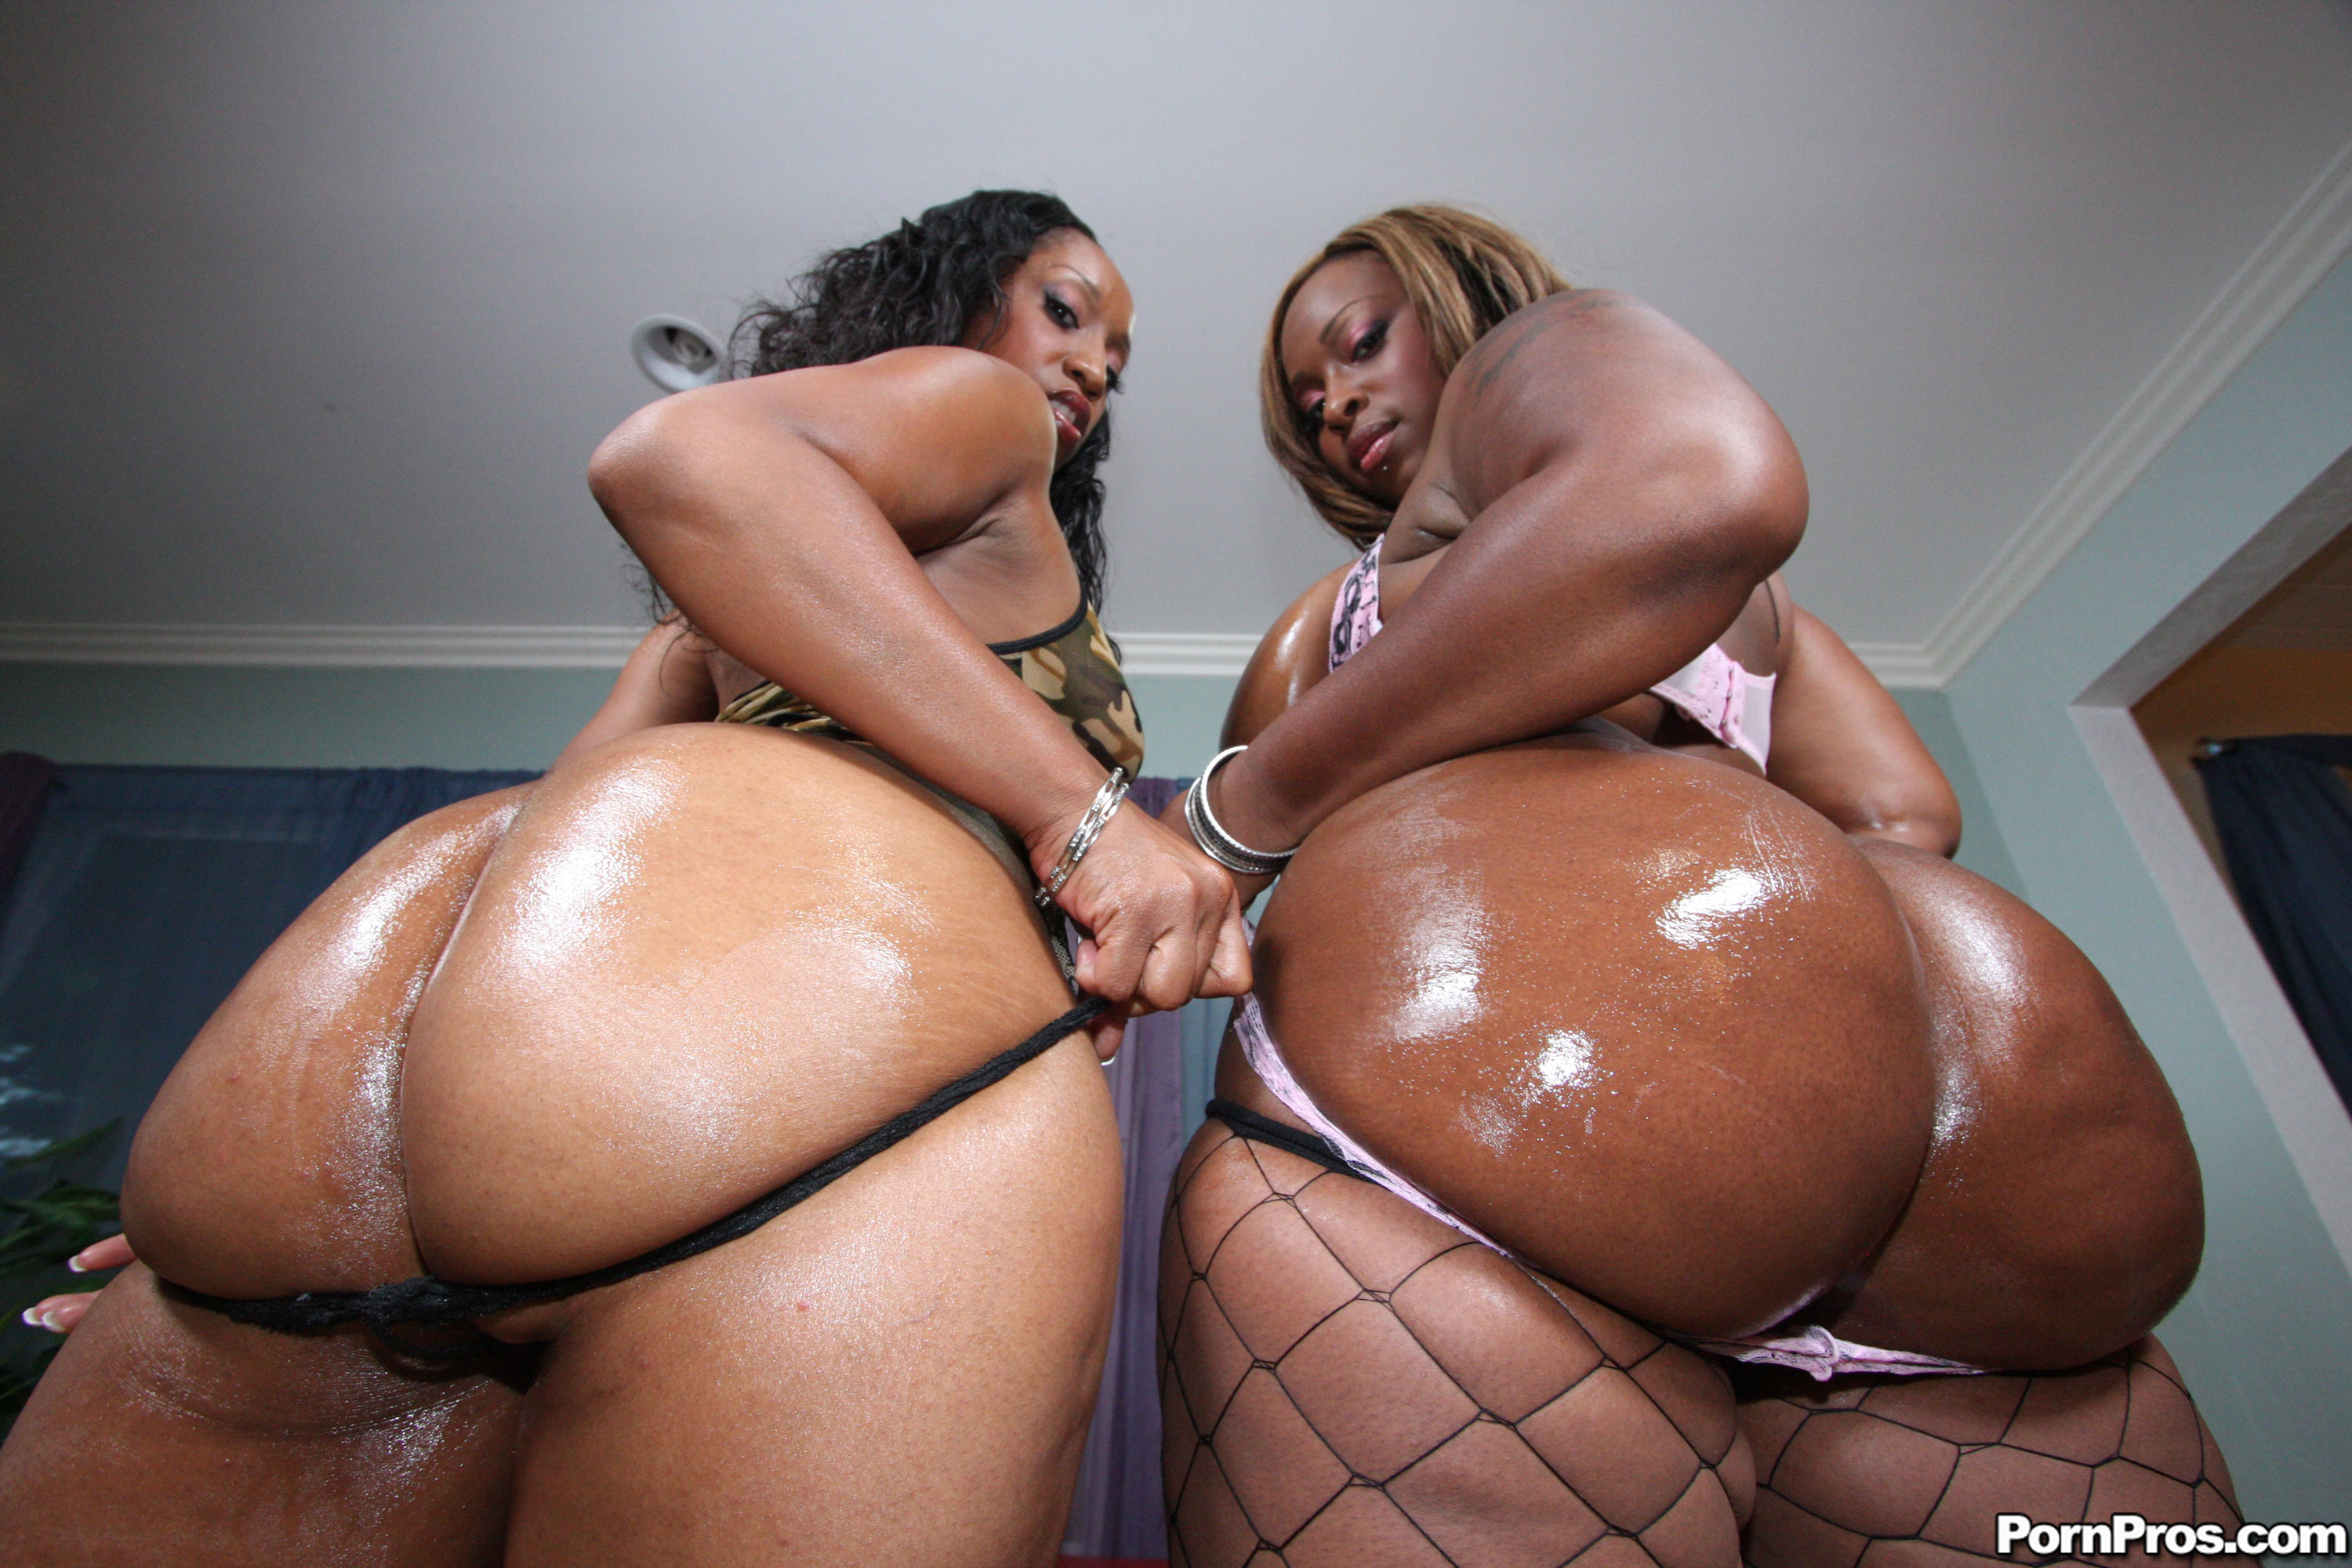 Black phat ass playing with wet pussy Ebony Phat Ass Wet Pussy Hot Sex Pics Best Porn Images And Free Xxx Photos On Www Xxxsearch Net